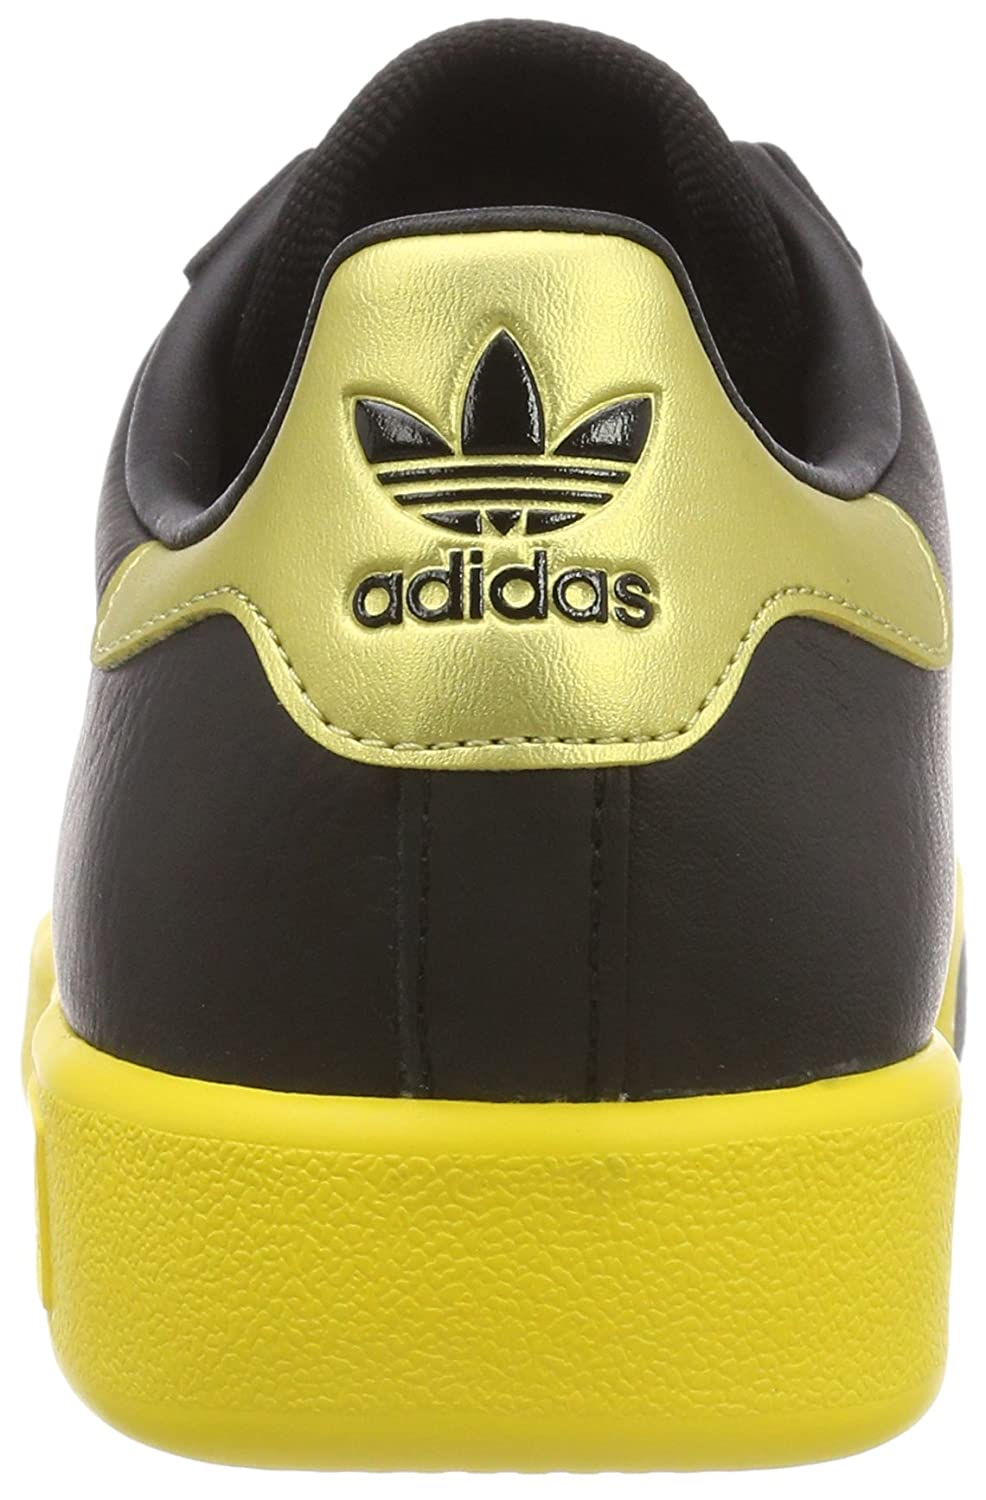 3c38840baa2ba7 adidas Men s Forest Hills Low-Top Sneakers  Amazon.co.uk  Shoes   Bags